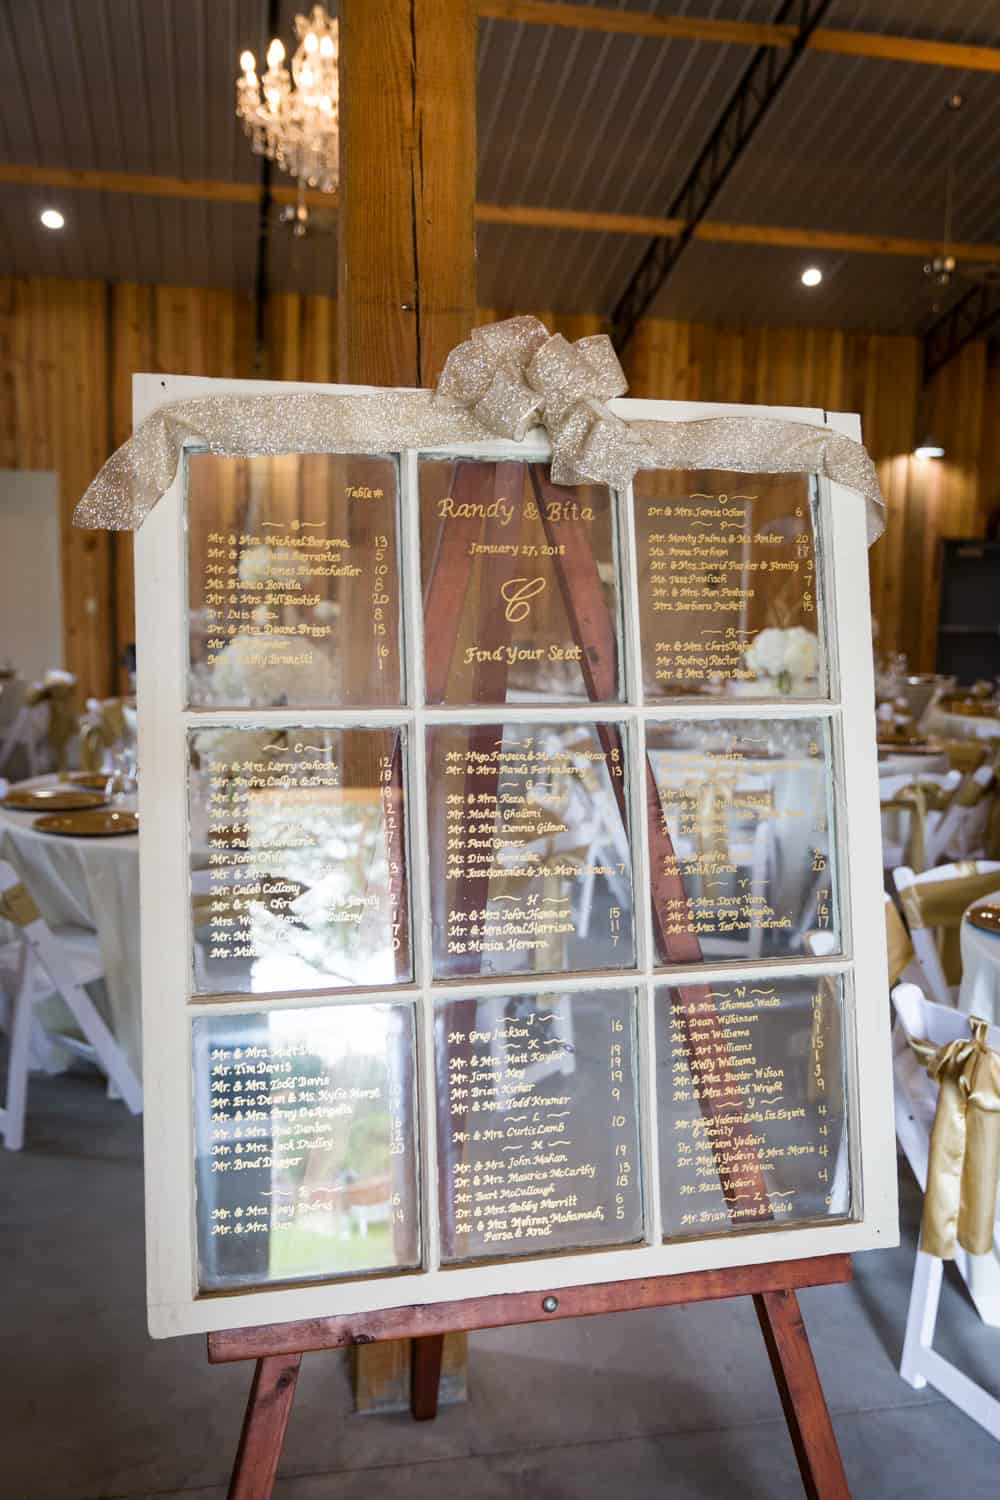 Window written with wedding seating chart